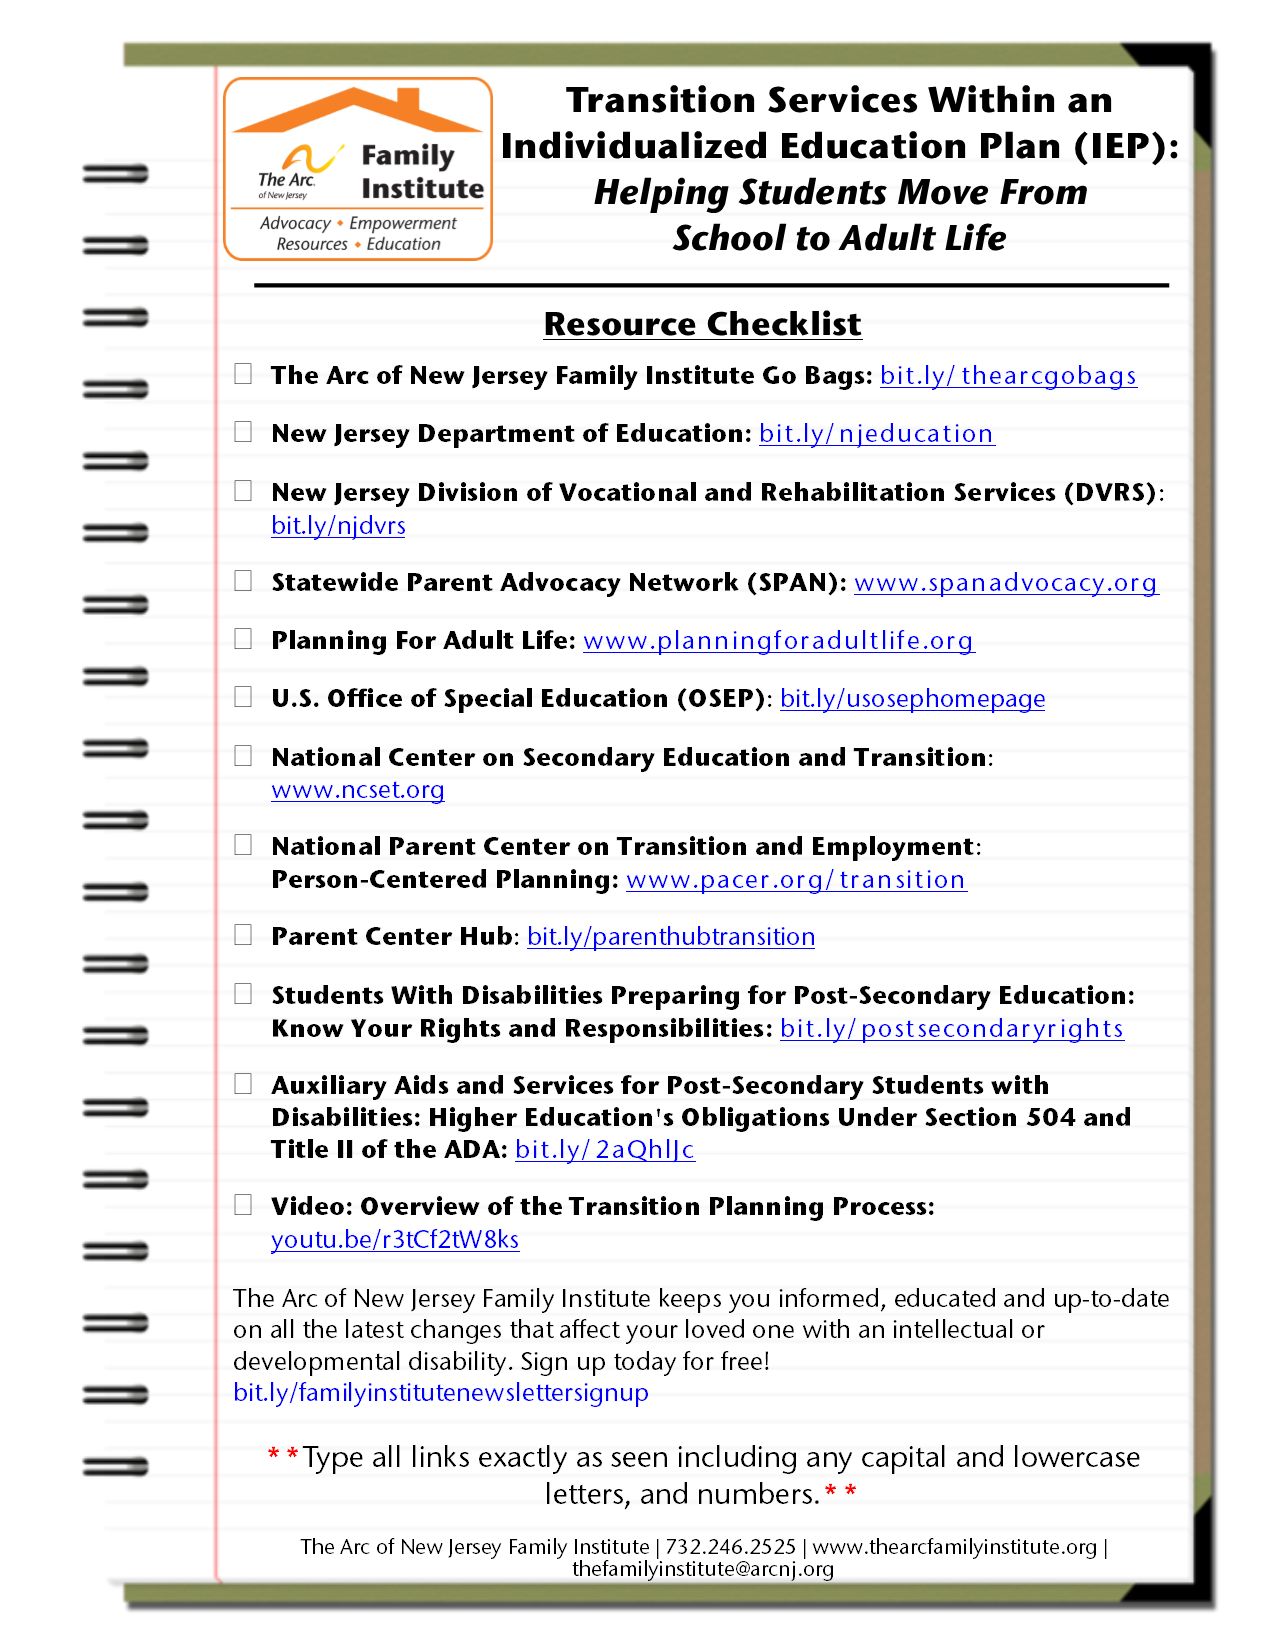 Transition Services Within an Individualized Education Plan: Helping Students Move From School to Adult Life - Checklist